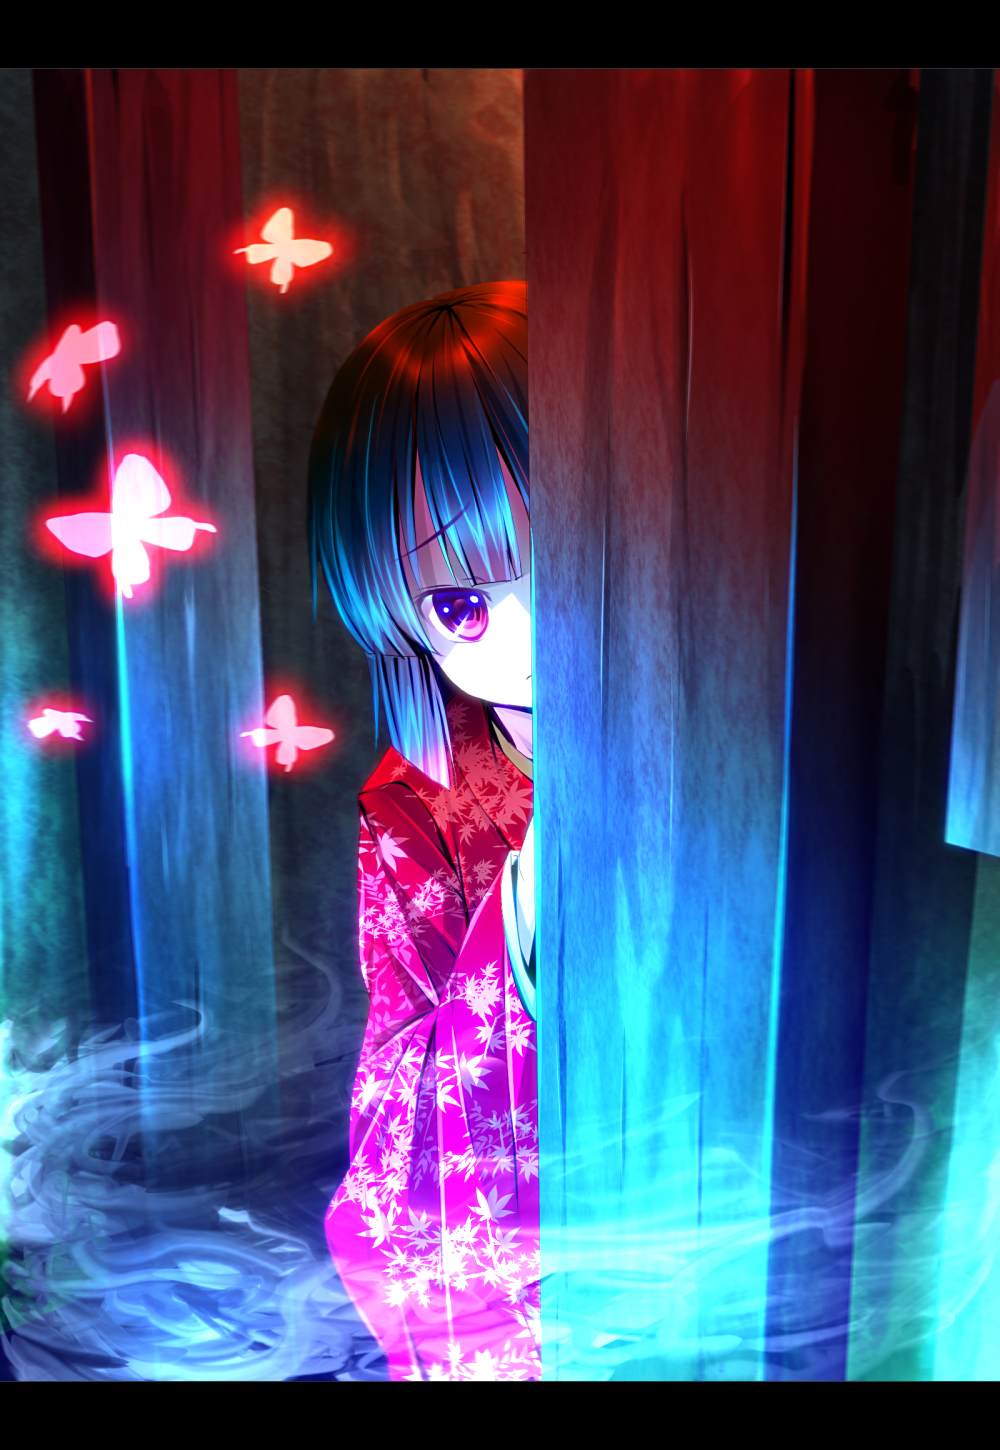 black_hair butterfly fatal_frame fatal_frame_2 fog ghost hiding highres japanese_clothes kimono letterboxed mist peeking_out purple_eyes red_eyes ryosios short_hair solo tachibana_chitose